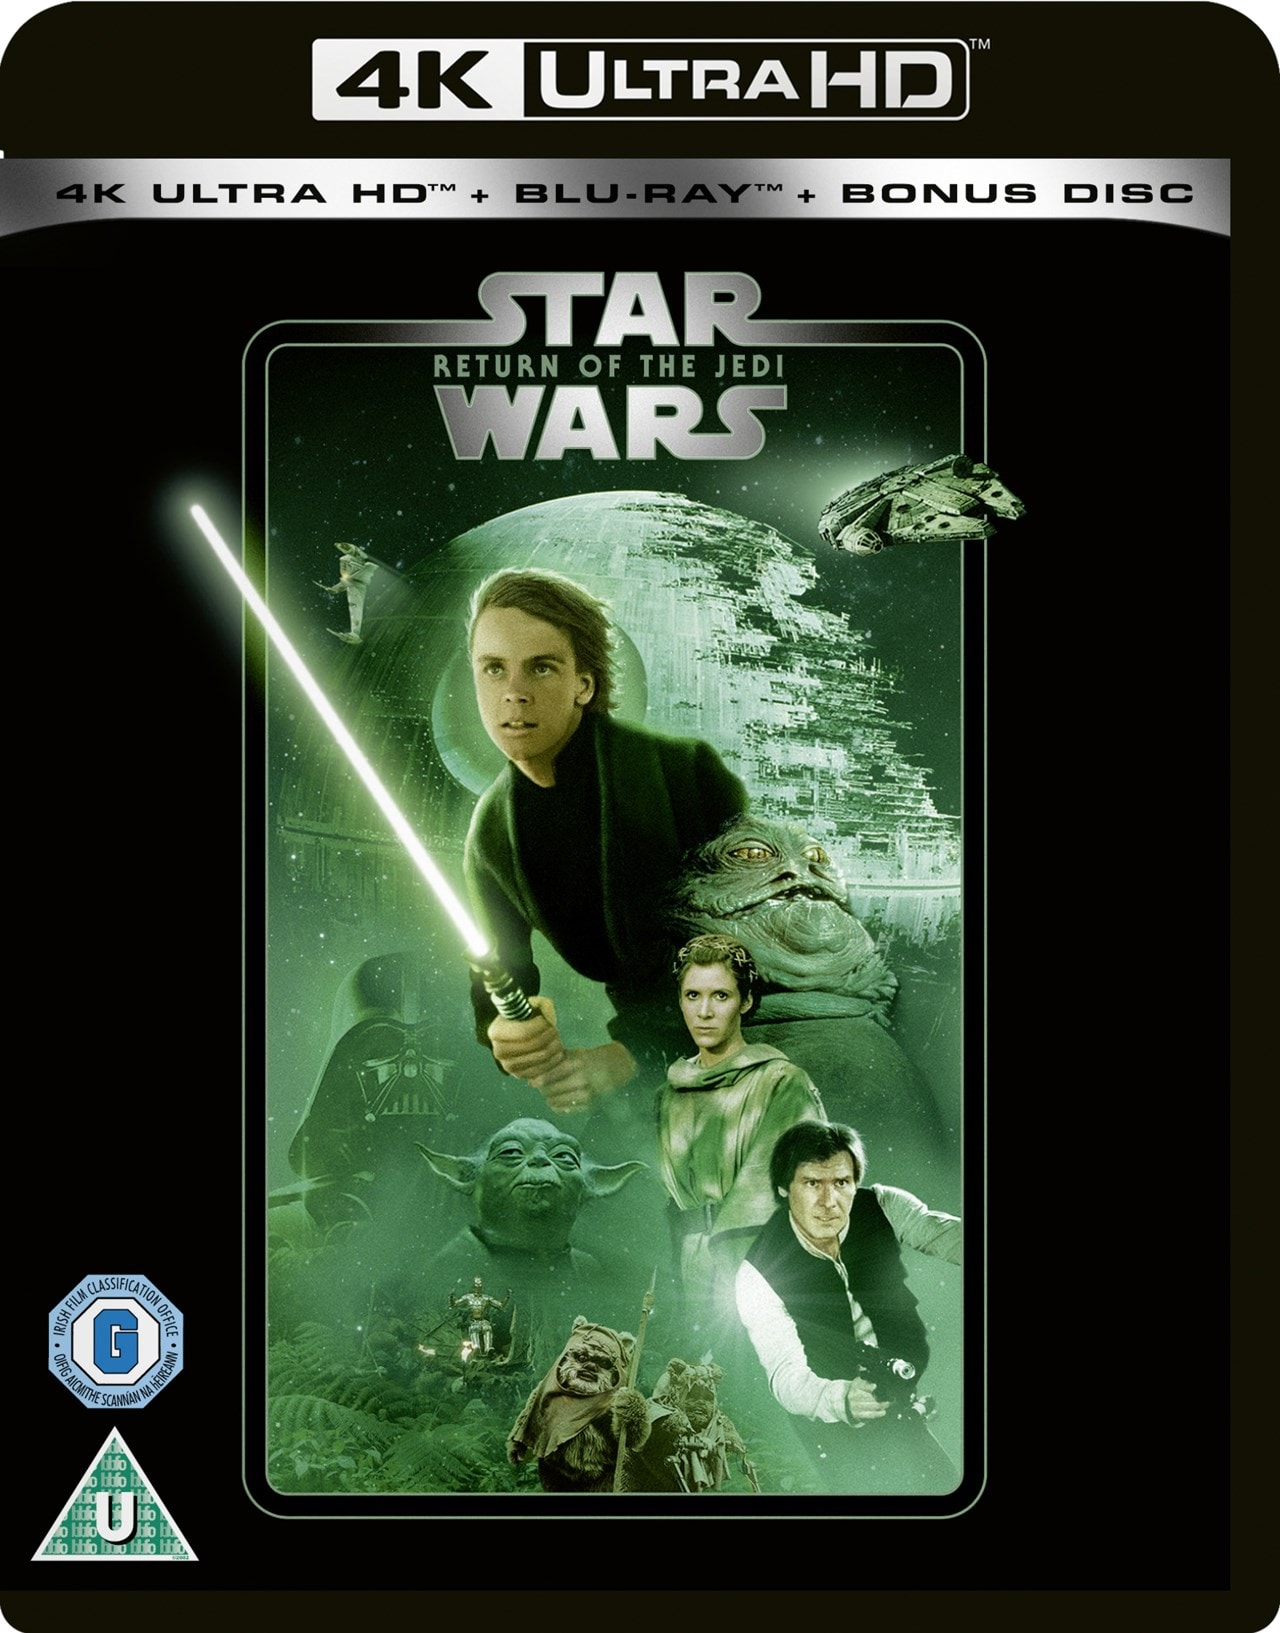 Star Wars: Episode VI - Return of the Jedi - 1